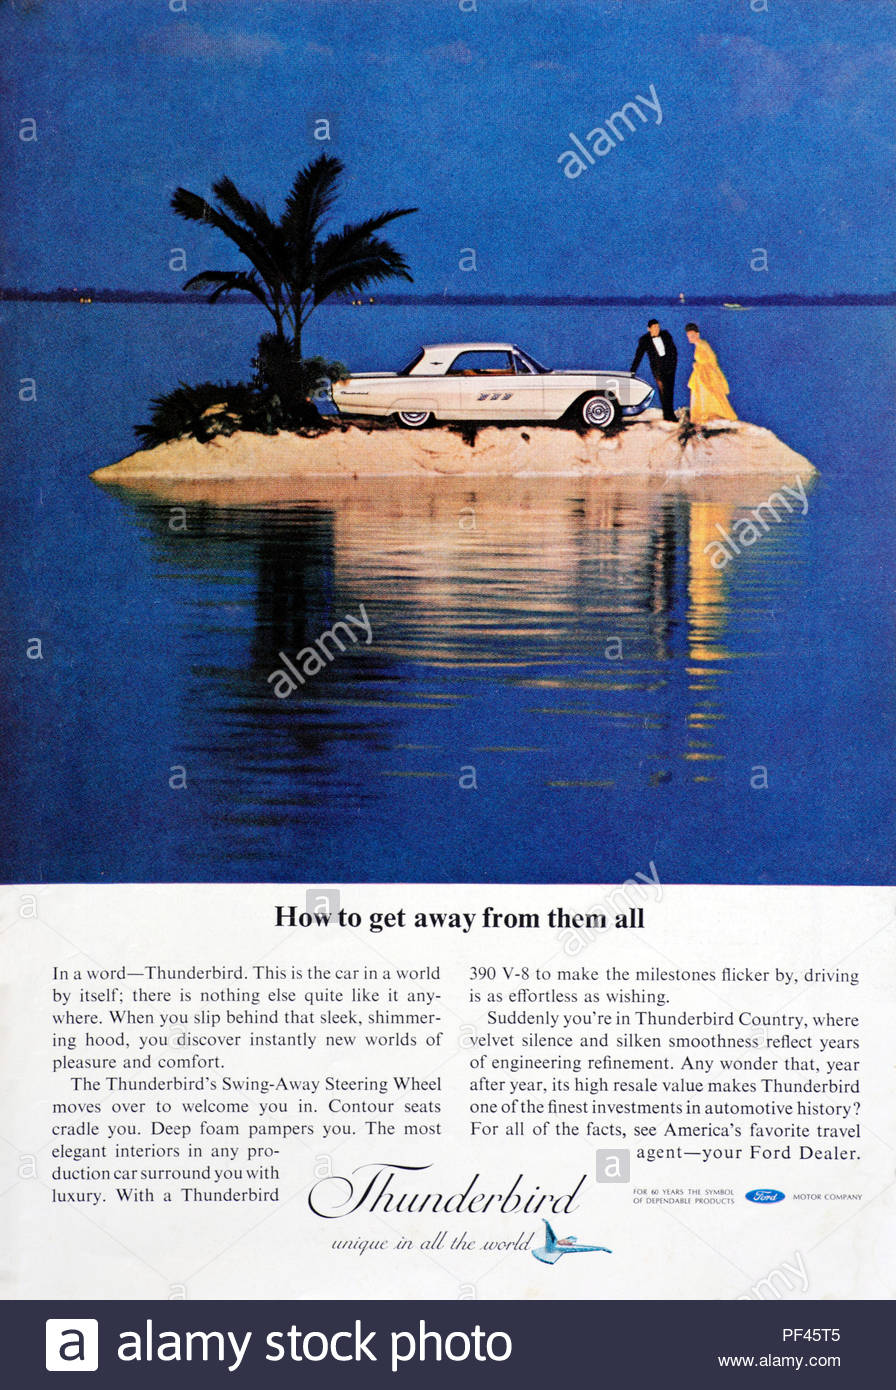 Vintage Advertising For The Ford Thunderbird Car 1963 Stock Photo